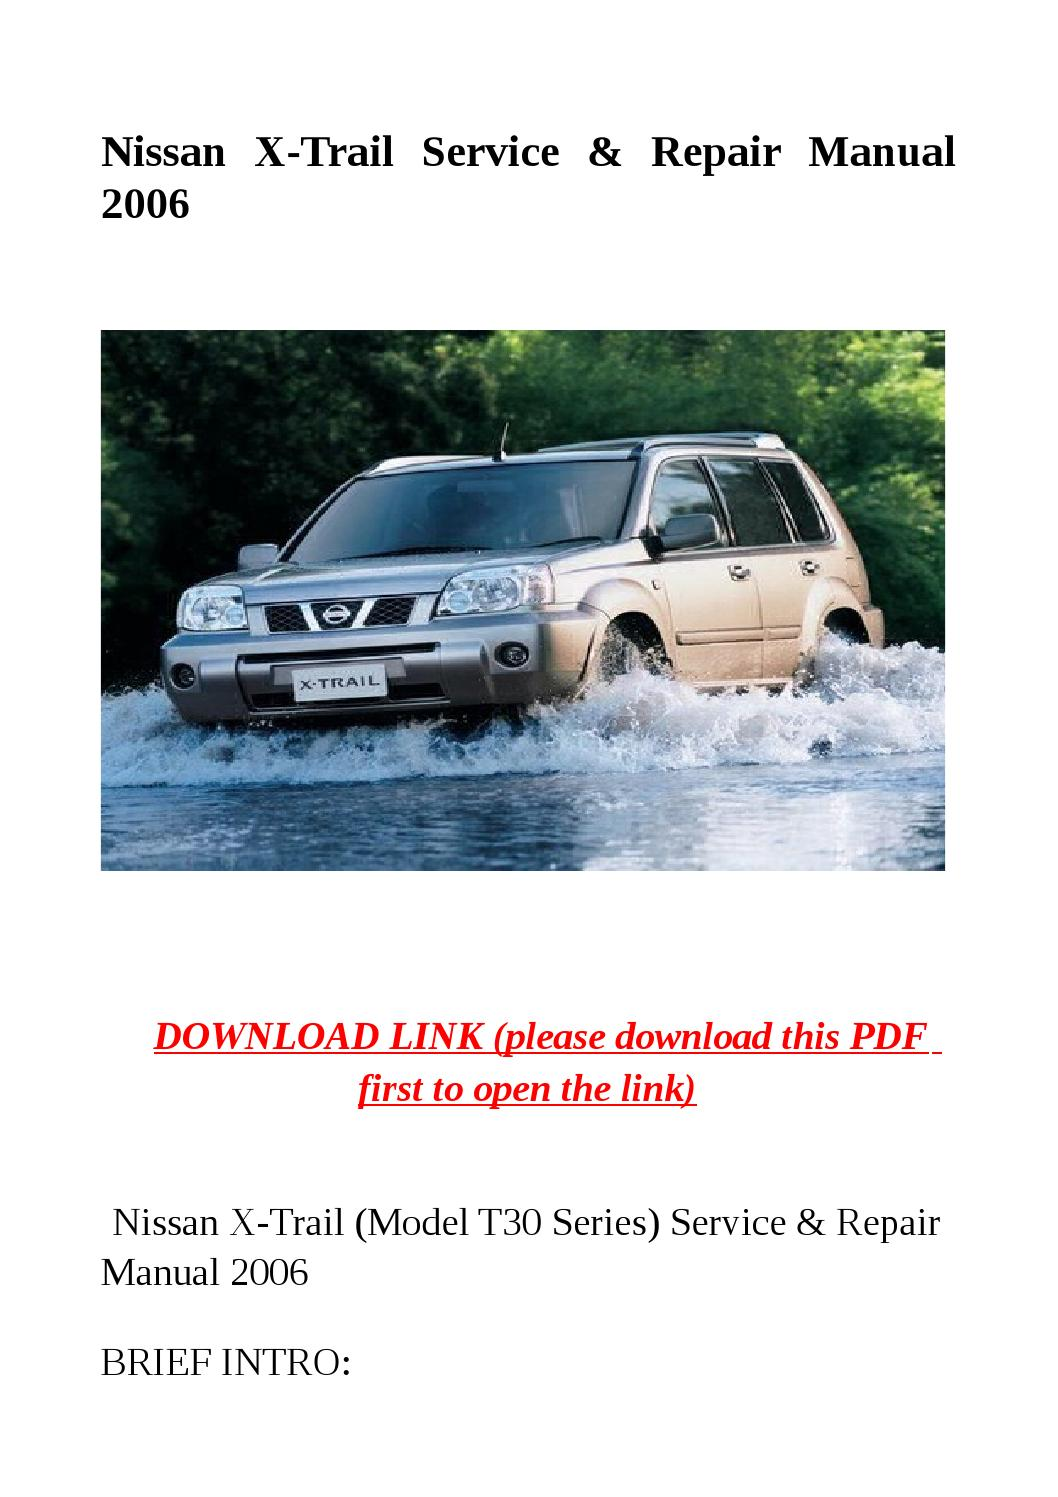 nissan x trail service repair manual 2006 by herrg issuu. Black Bedroom Furniture Sets. Home Design Ideas